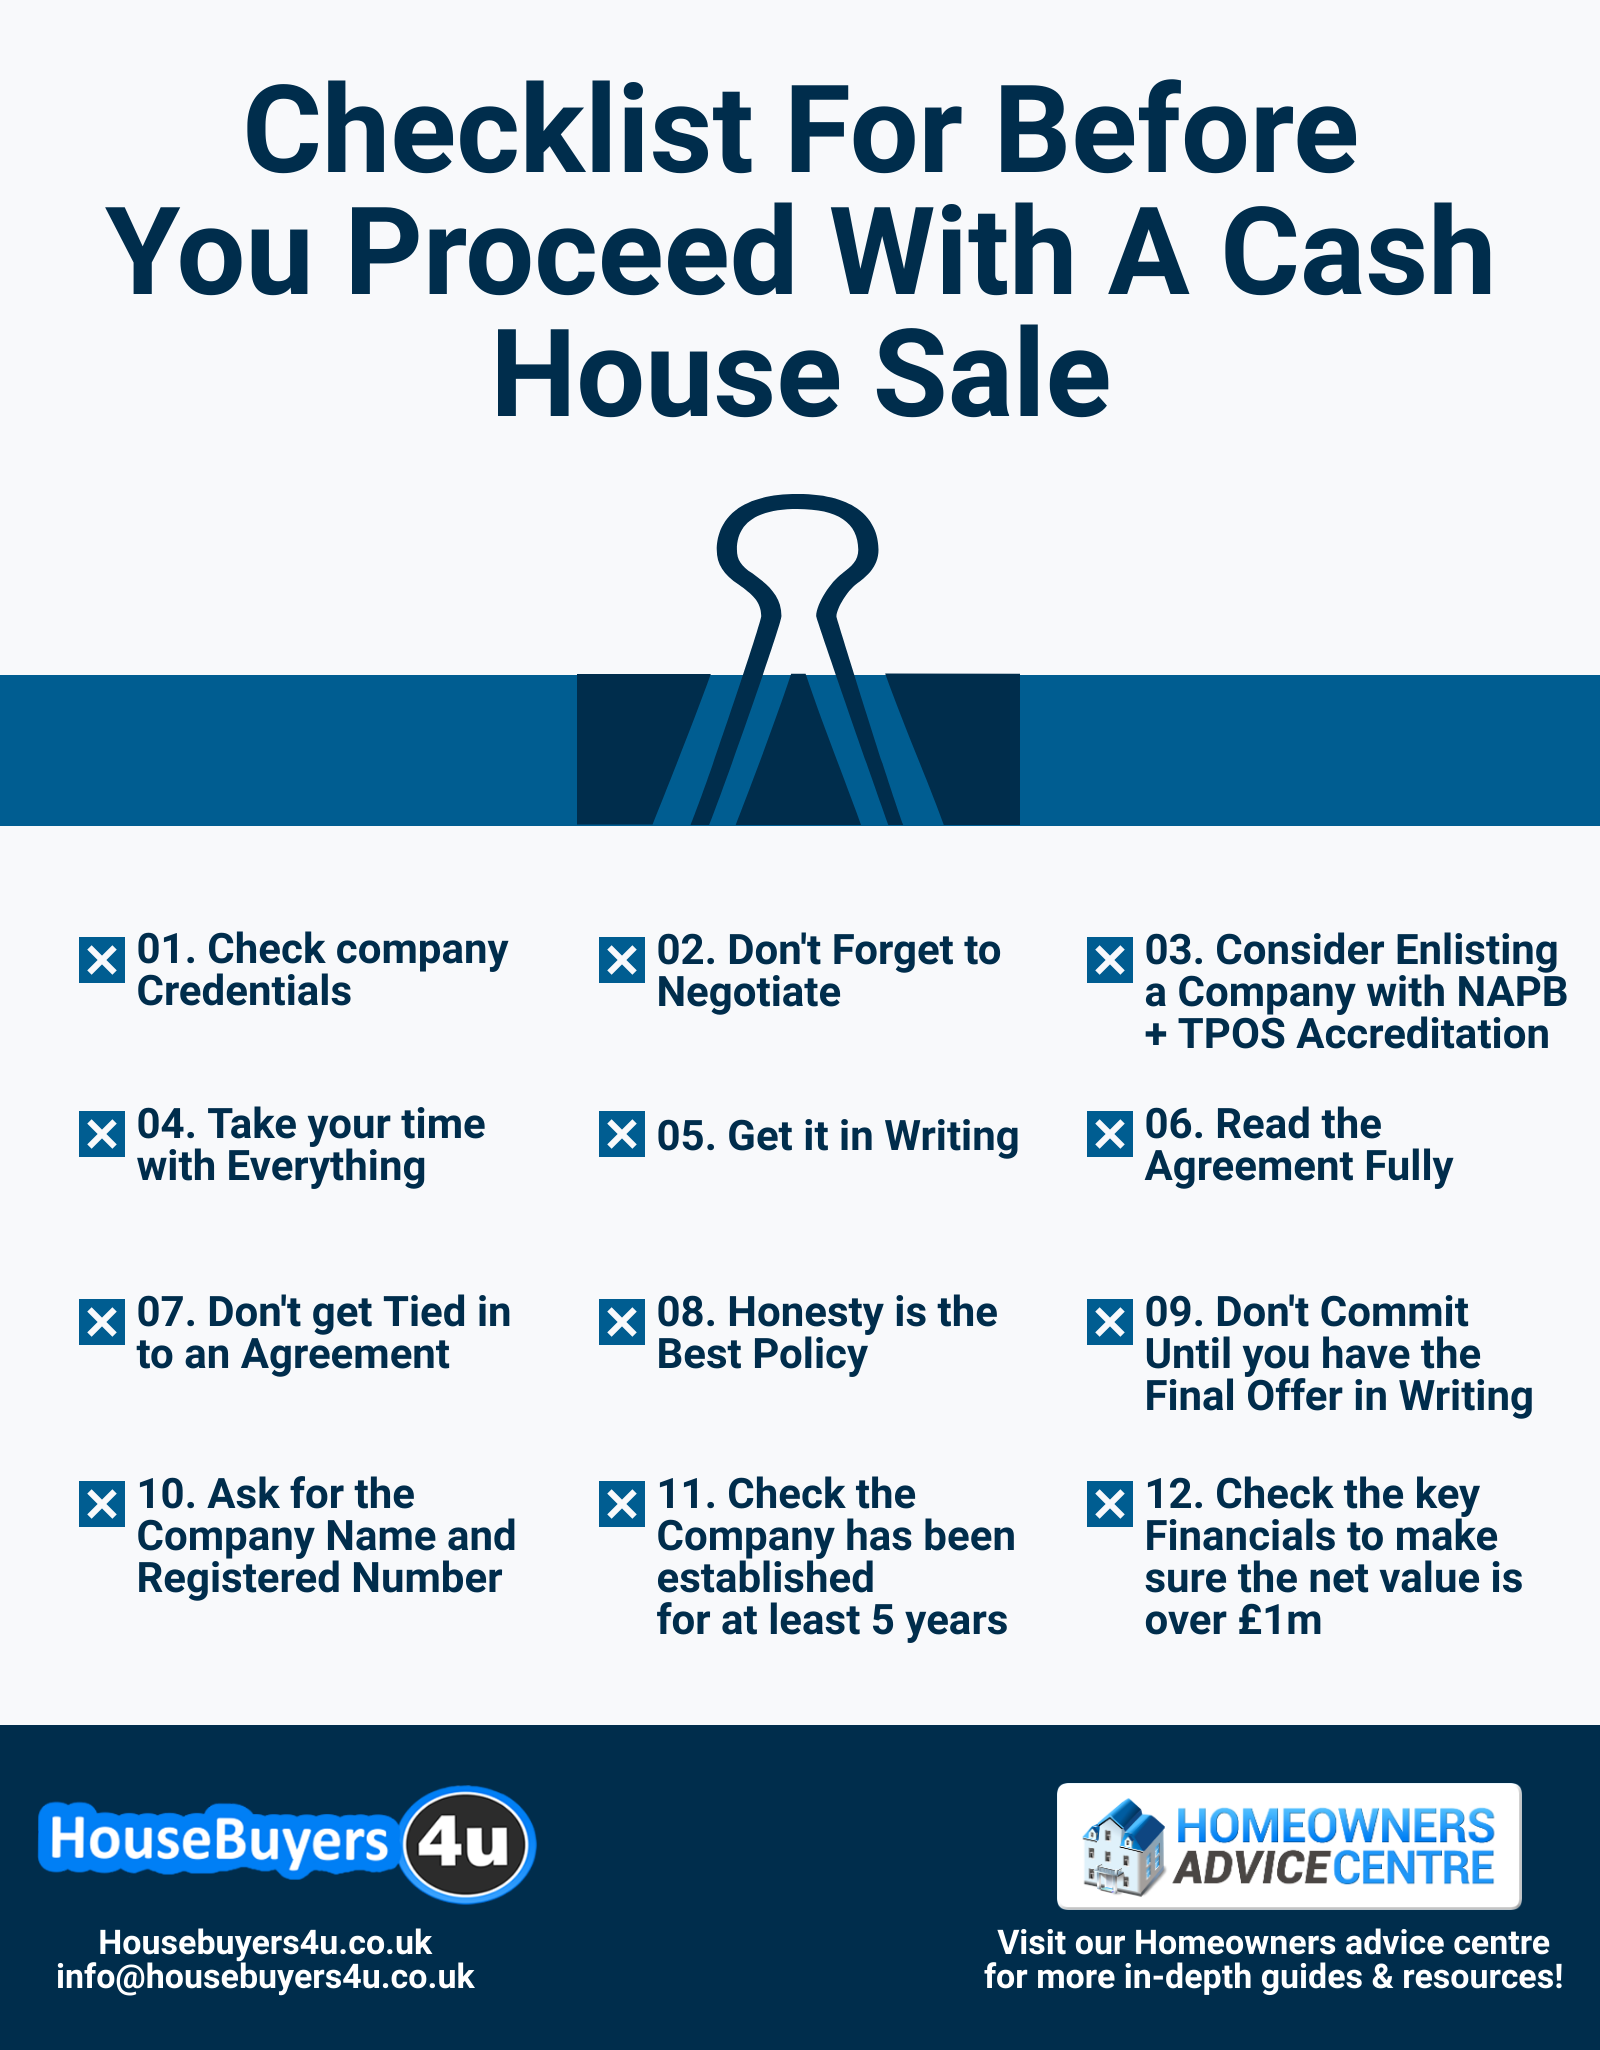 Checklist for before you proceed with a cash house sale